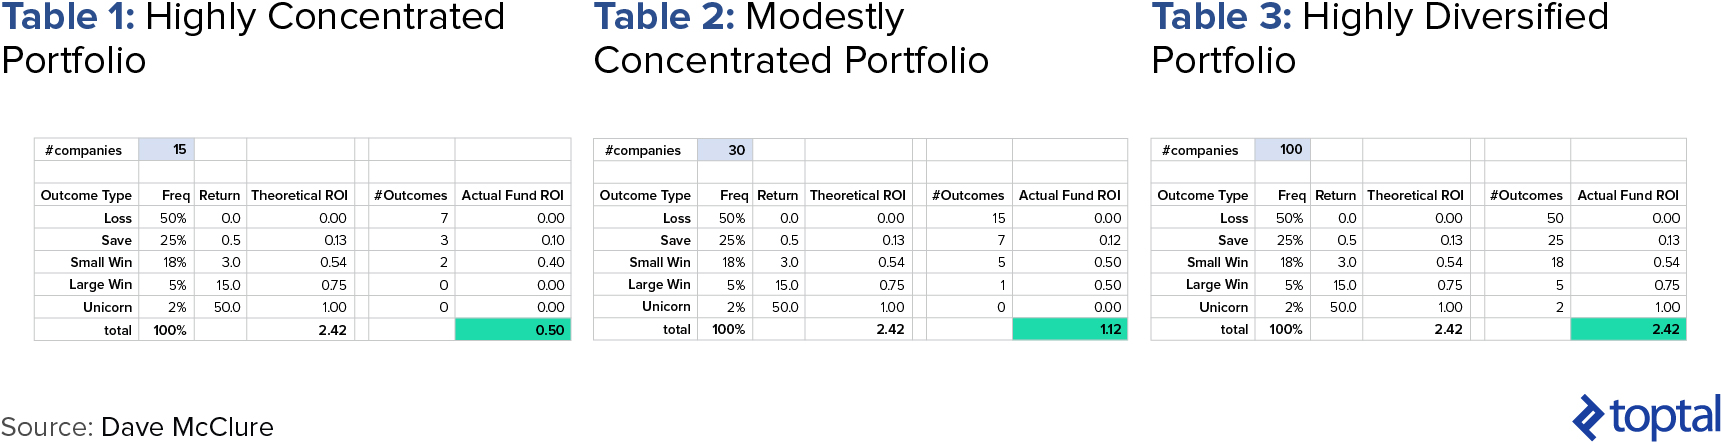 Table 1: Highly Concentrated Portfolio; Table 2: Modestly-Concentrated Portfolio; Table 3: Highly Diversified Portfolio